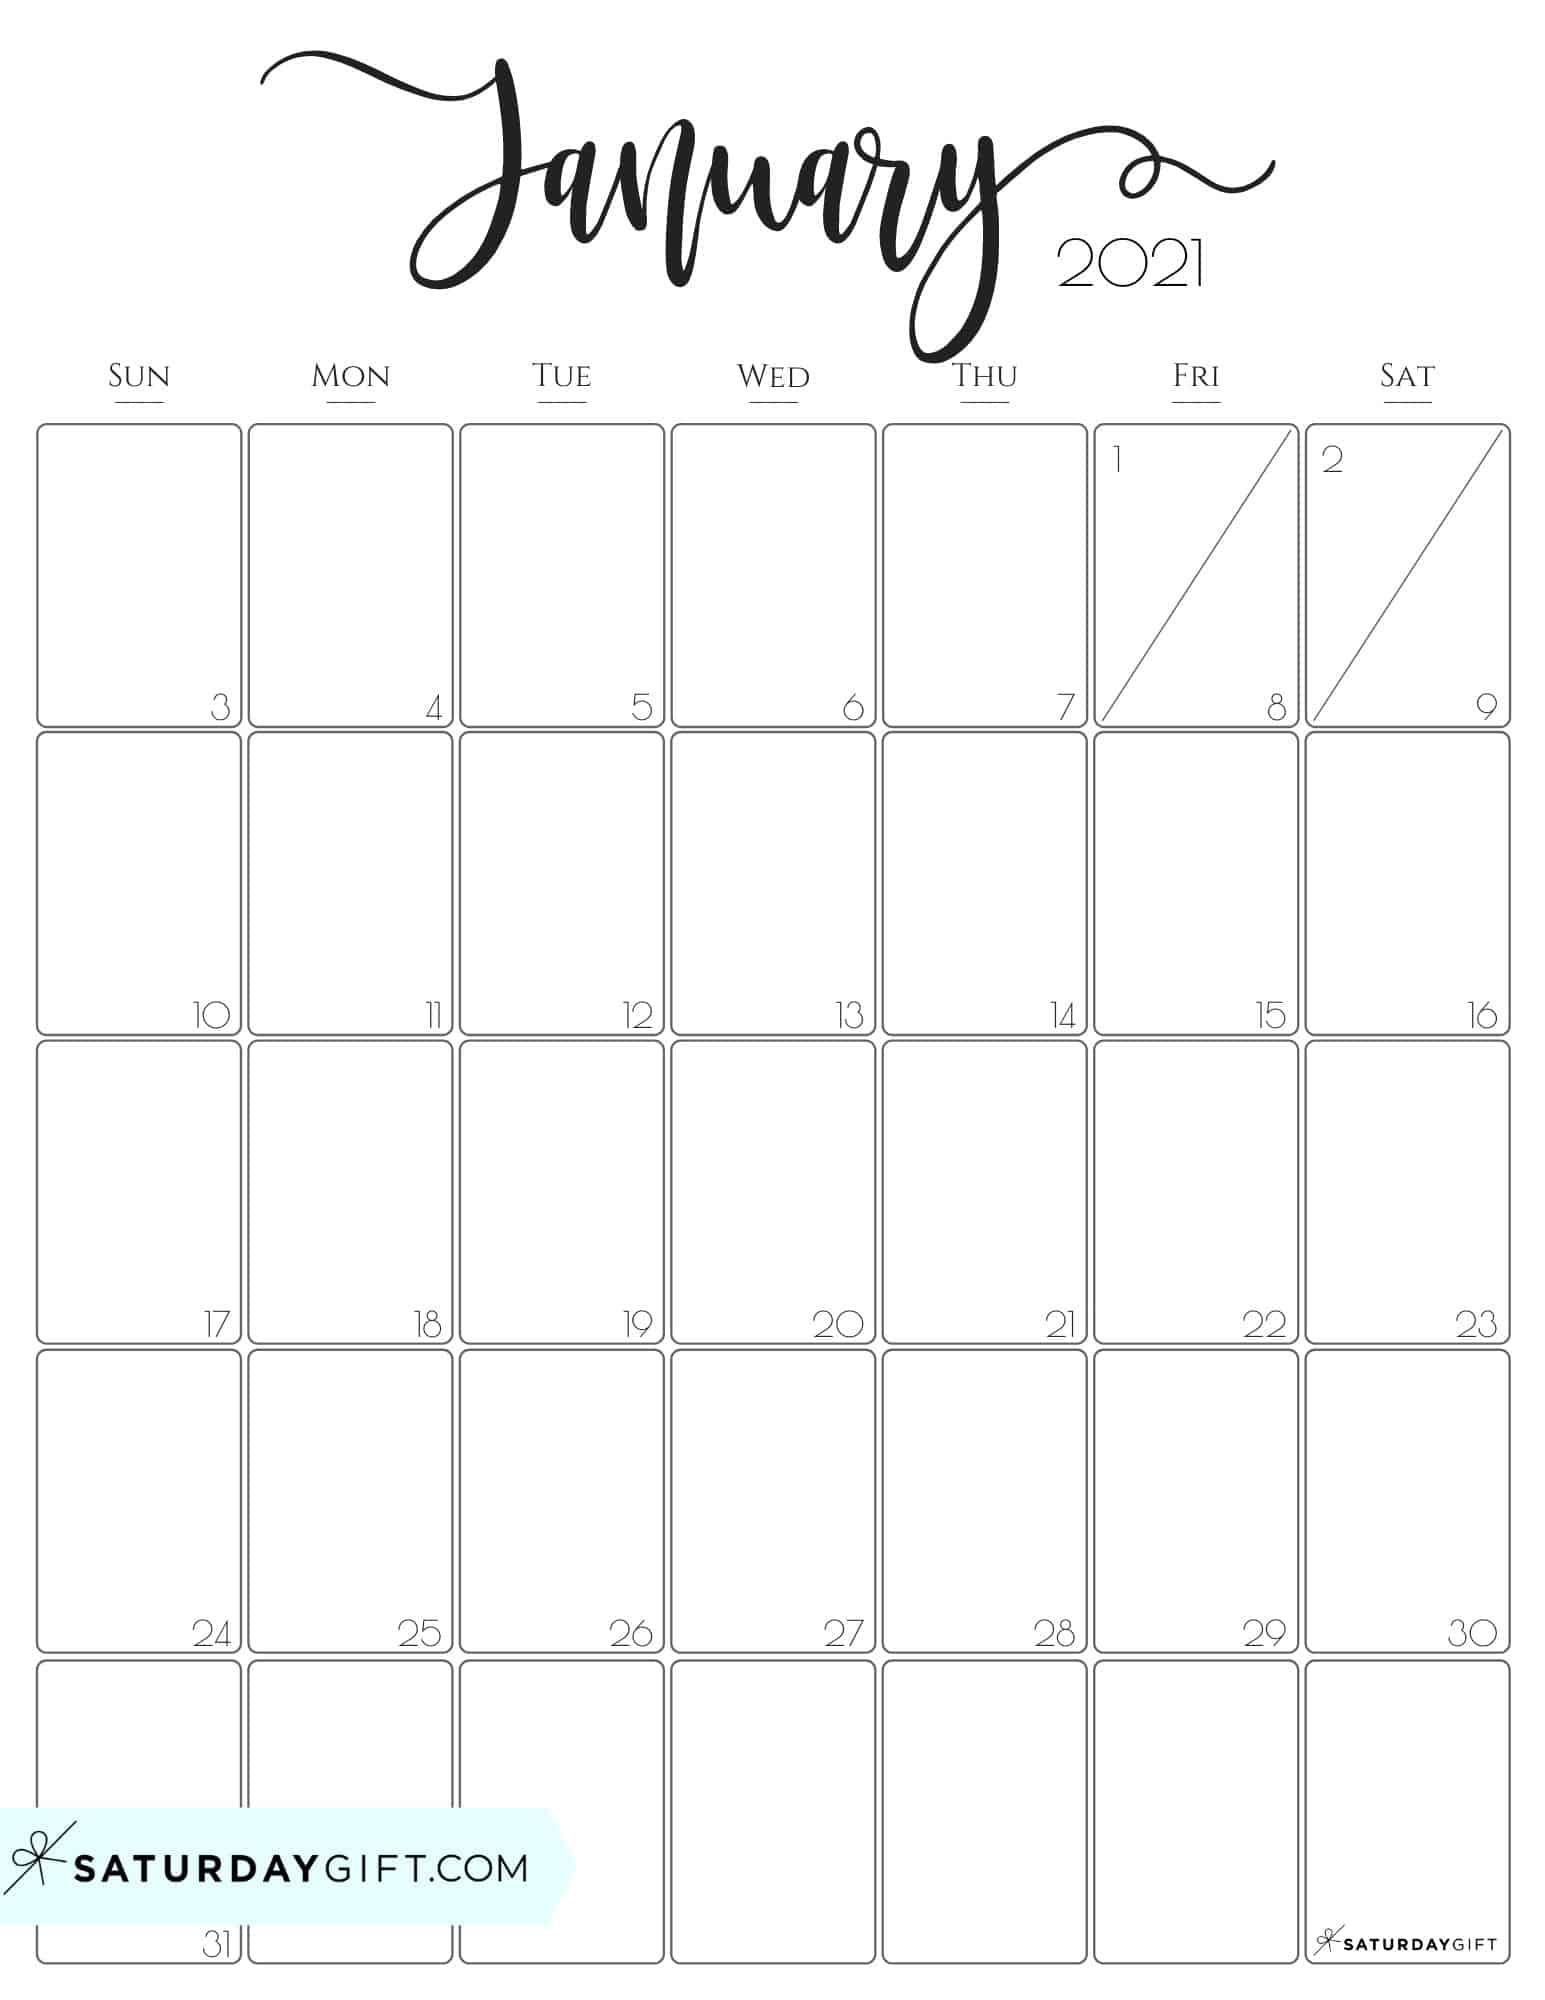 Month Of January 2021 Calendar Cute (& Free!) Printable January 2021 Calendar | SaturdayGift in